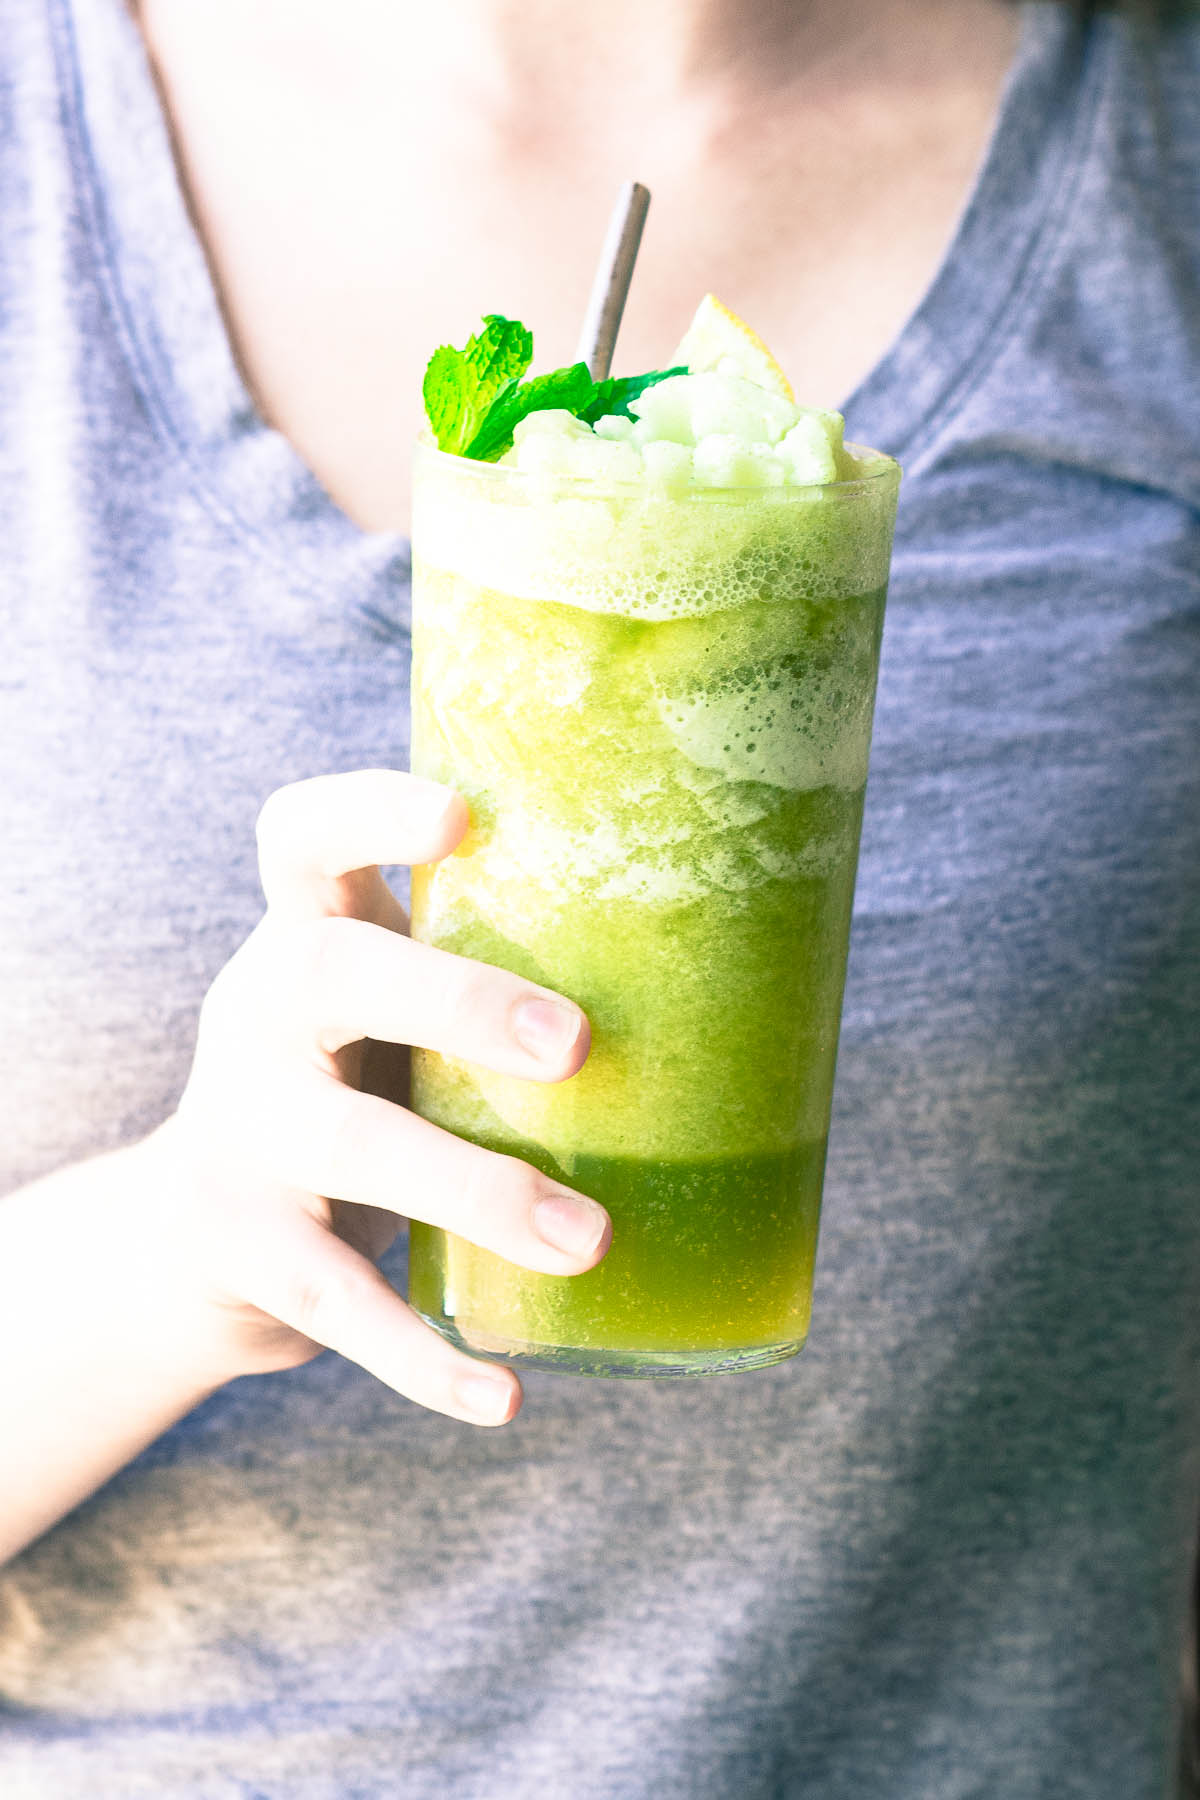 Hand holding a tall glass of Frozen Mint Lemonade, with mint sprig and straw